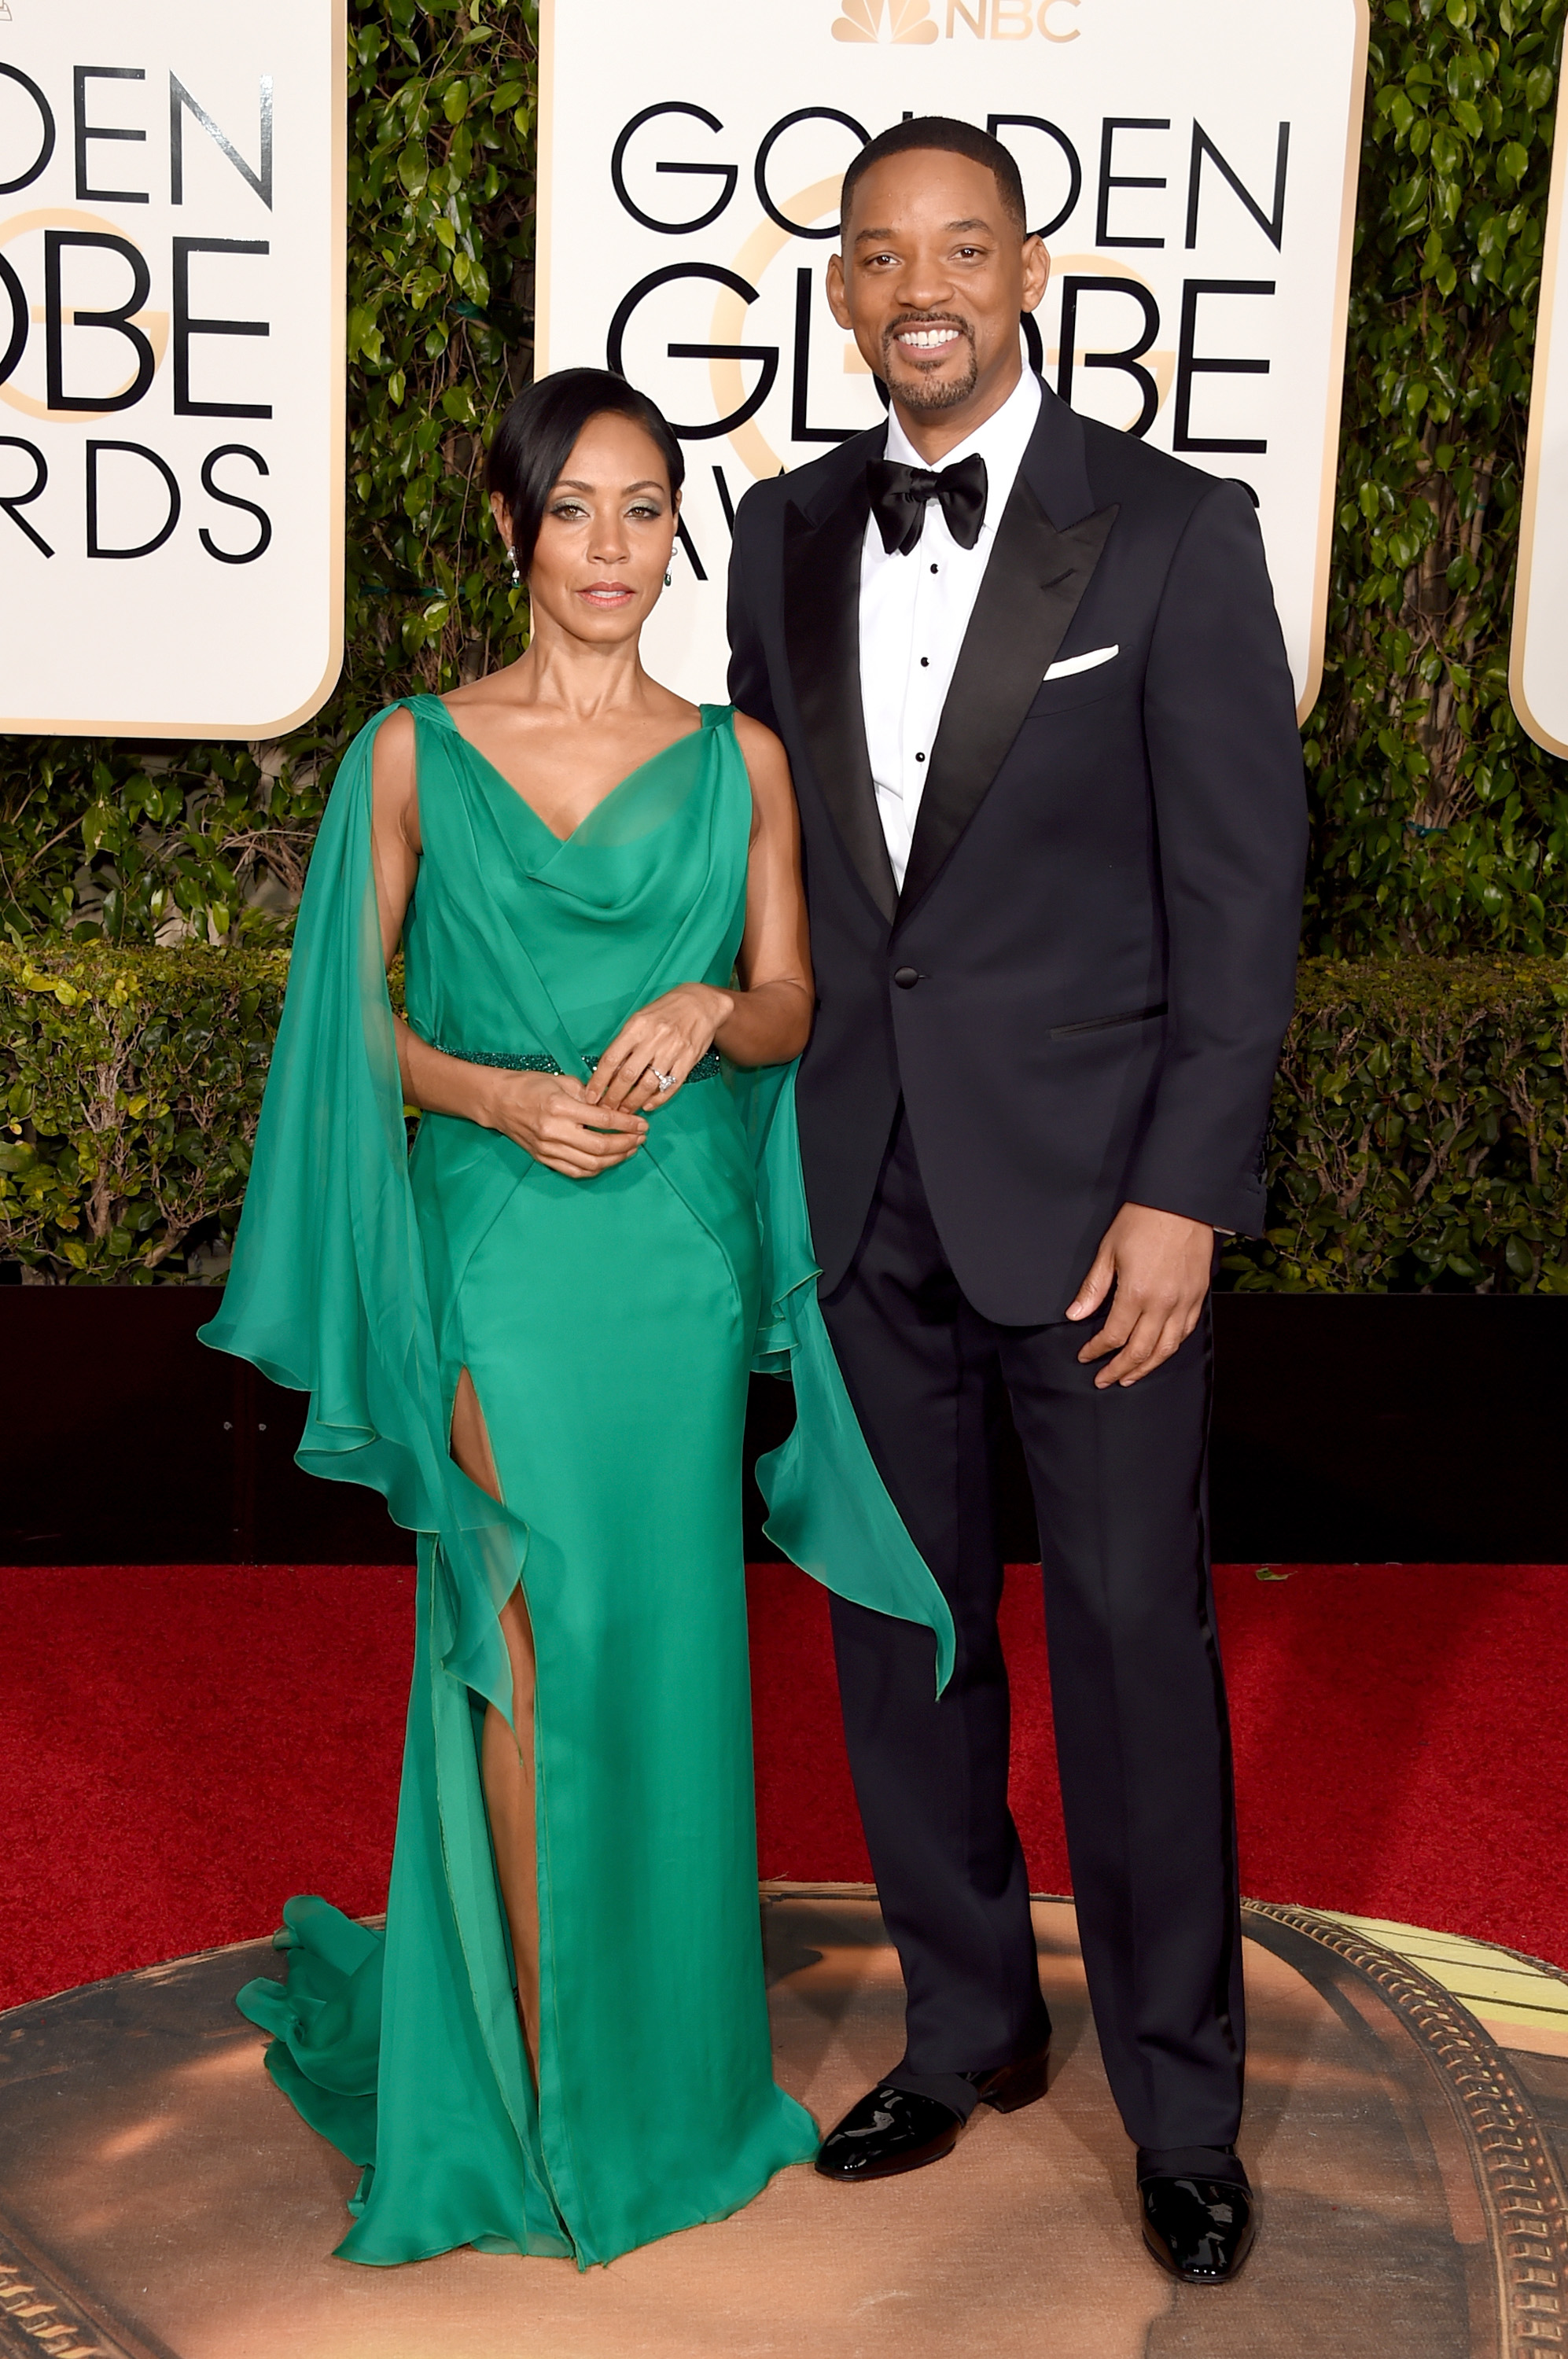 Actors Jada Pinkett Smith and Will Smith attend the 73rd Annual Golden Globe Awards held at the Beverly Hilton Hotel on January 10, 2016 in Beverly Hills, California.